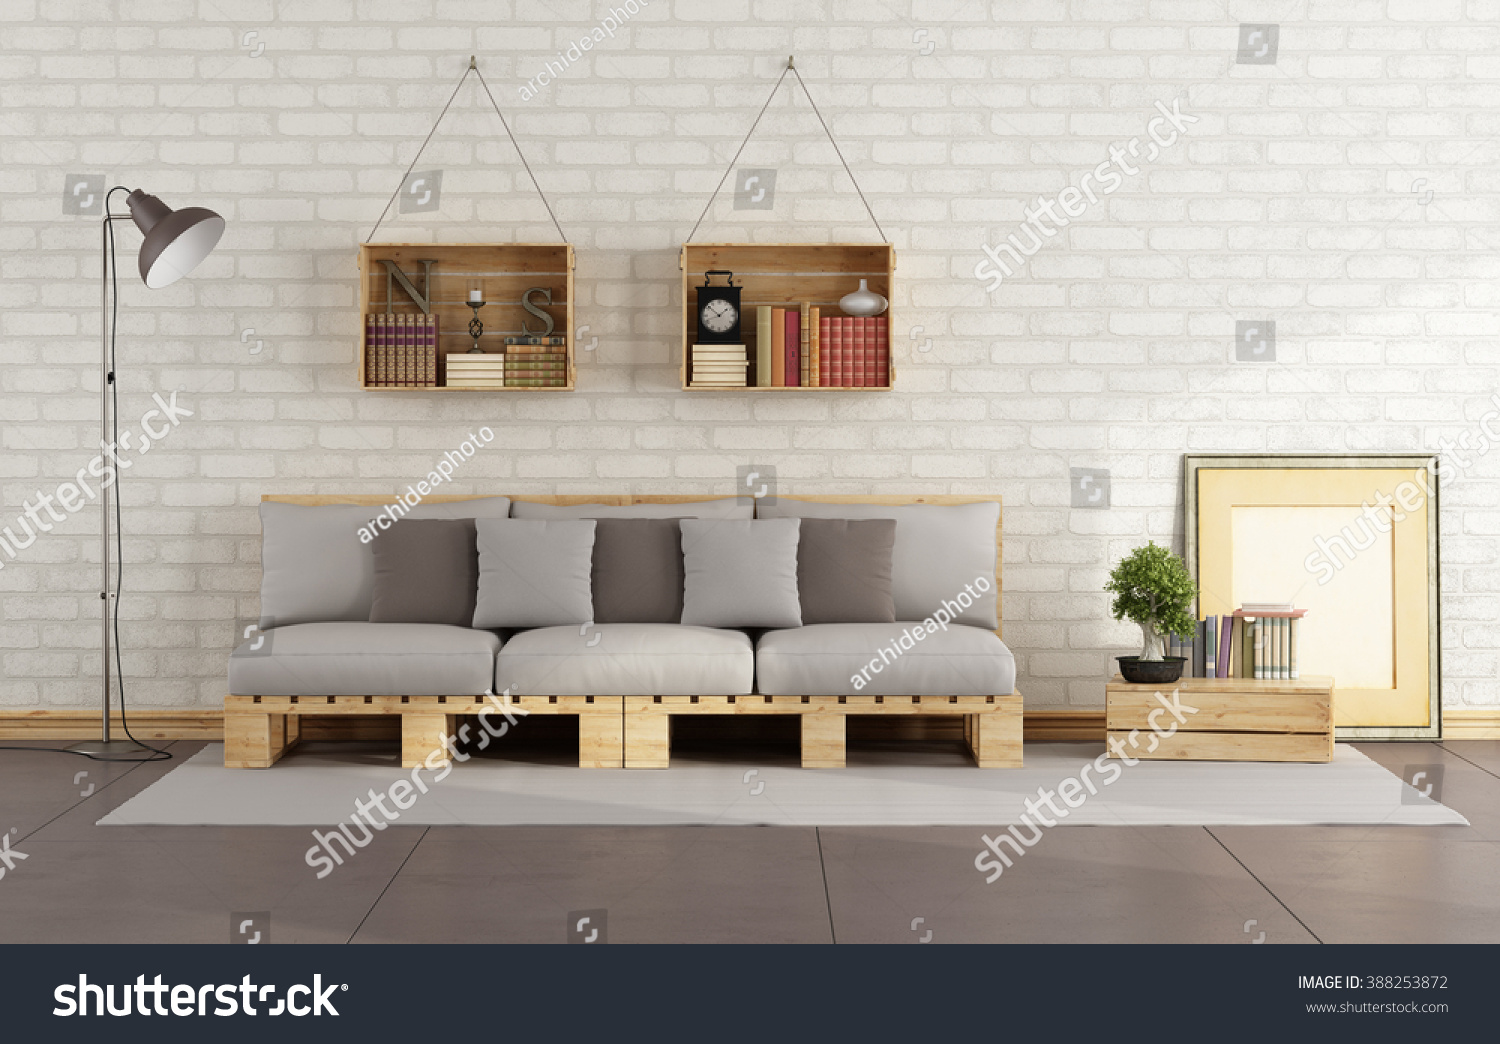 Living Room With Pallet Sofa And Wooden Crate With Books On Brick Wall   3D  Rendering